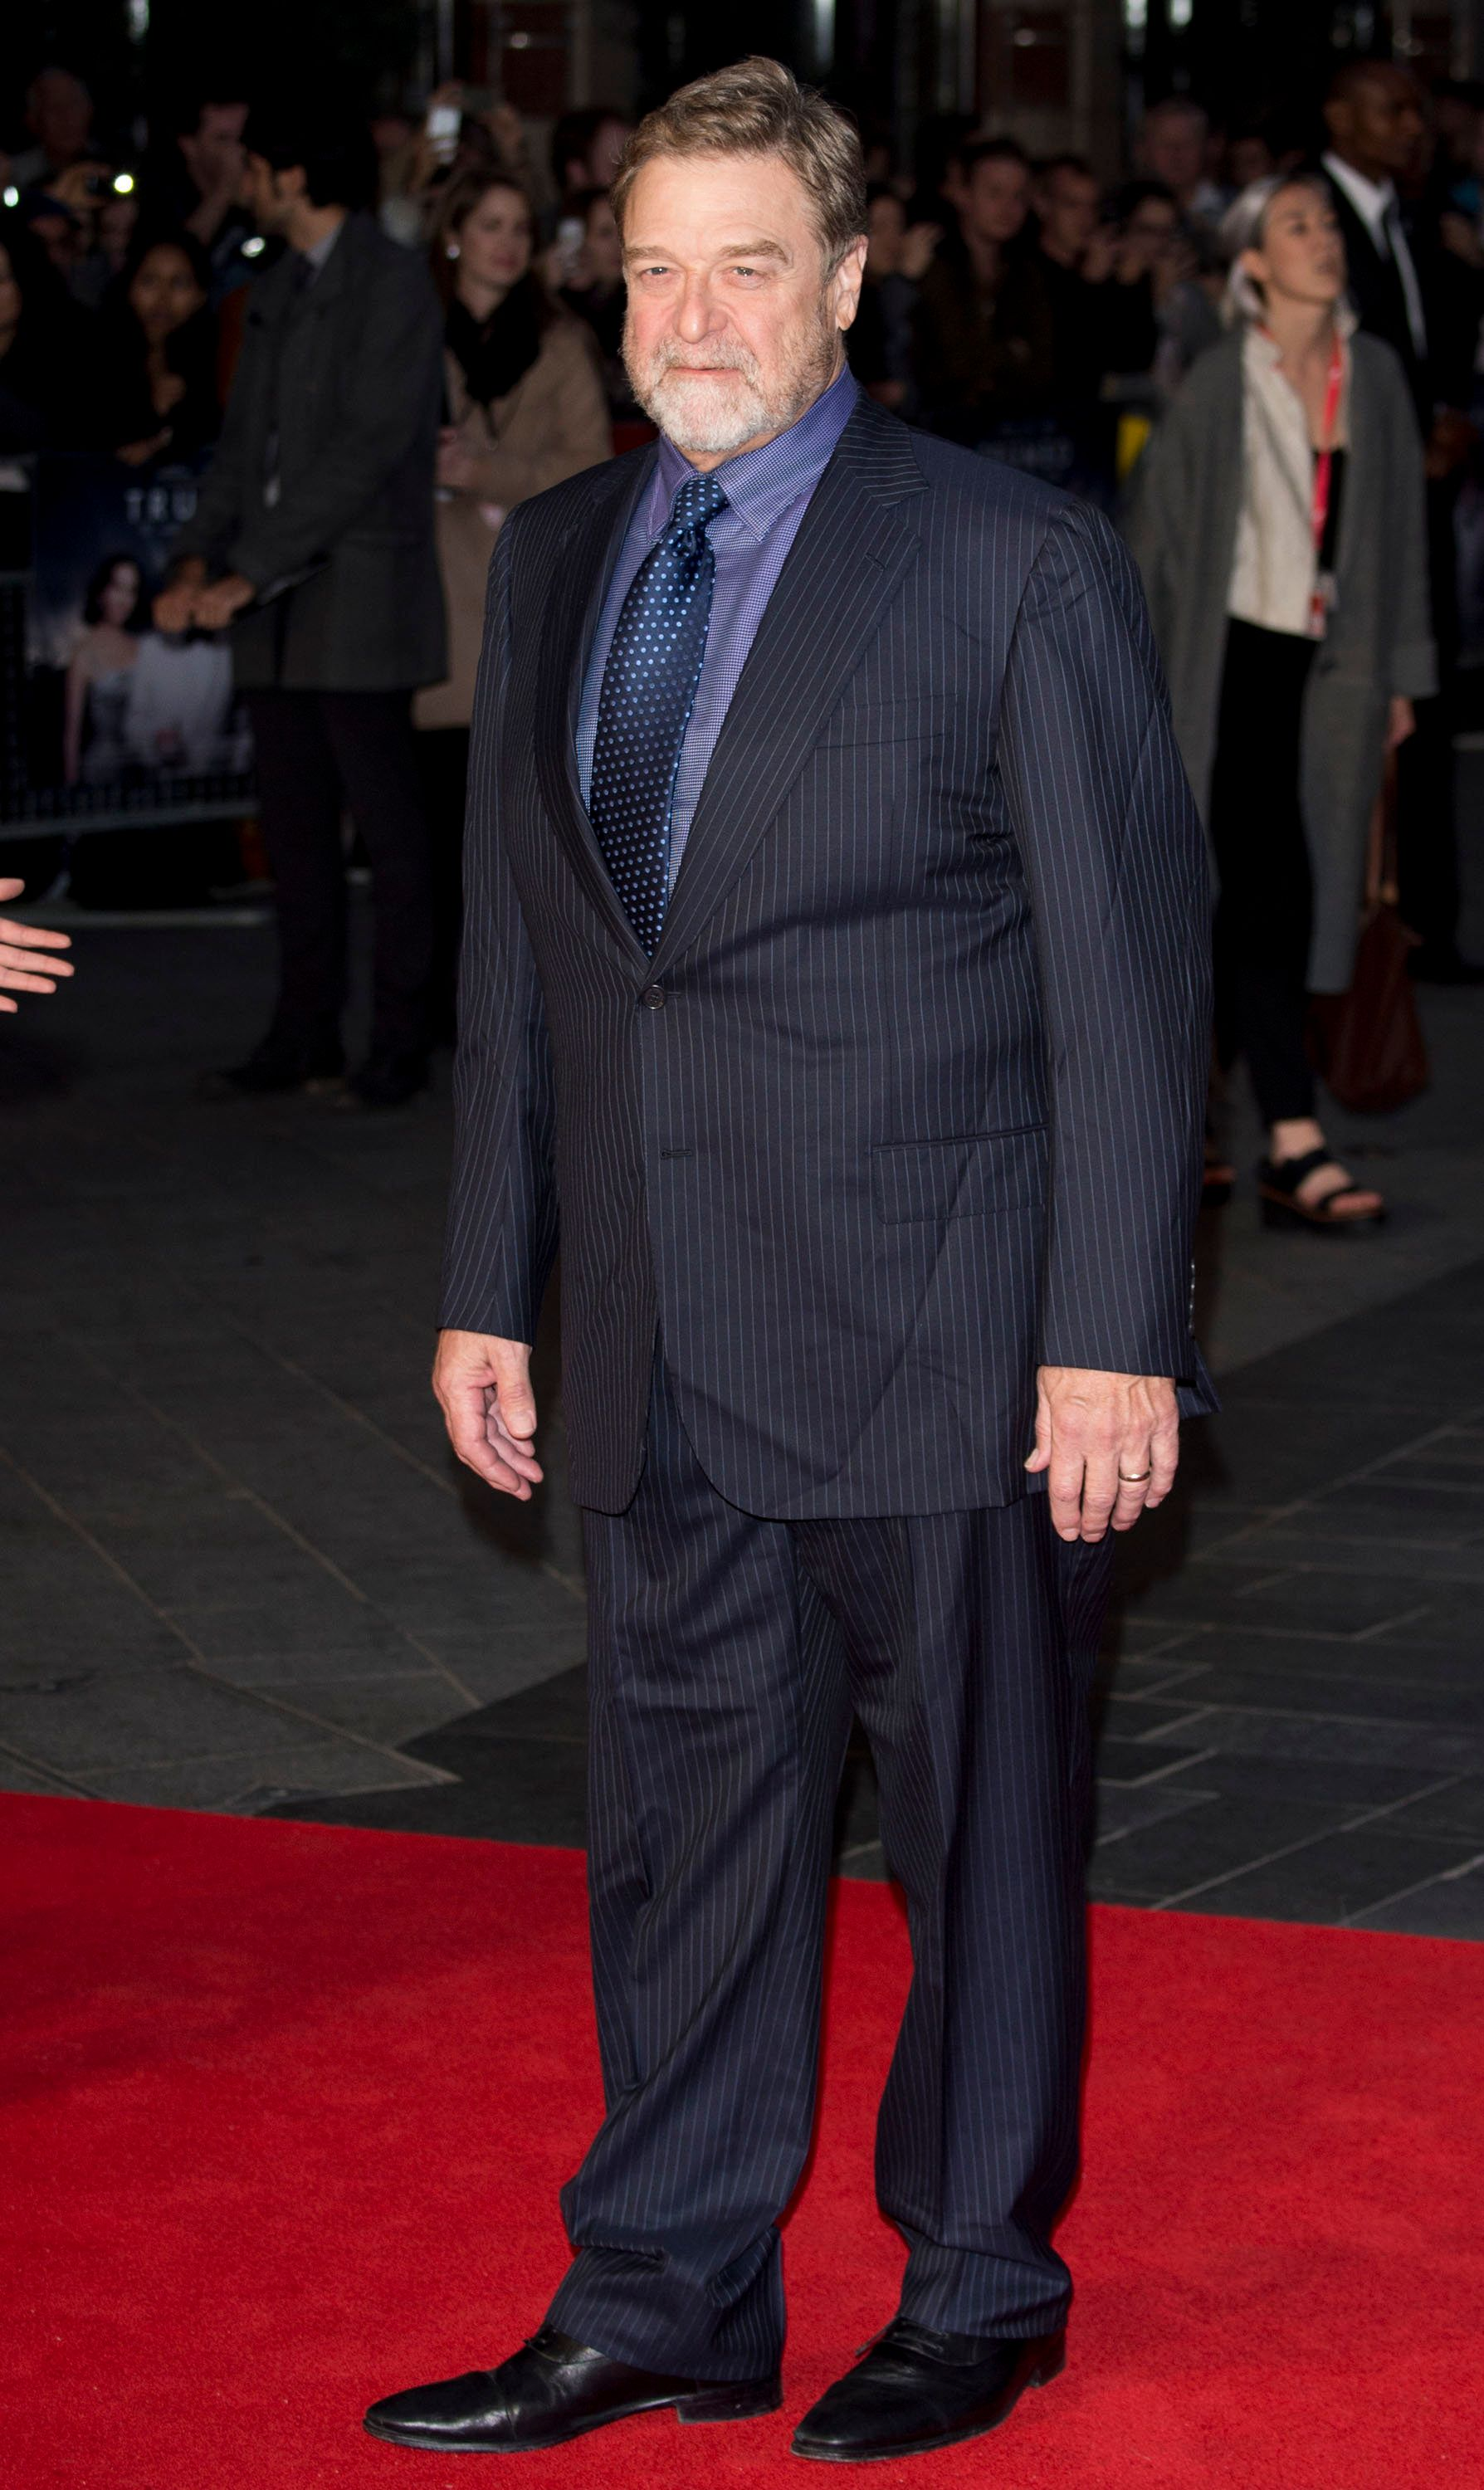 LONDON, ENGLAND - OCTOBER 08:  John Goodman attends the 'Trumbo' Accenture Gala during the BFI London Film Festival at Odeon Leicester Square on October 8, 2015 in London, England.  (Photo by Mark Cuthbert/UK Press via Getty Images)